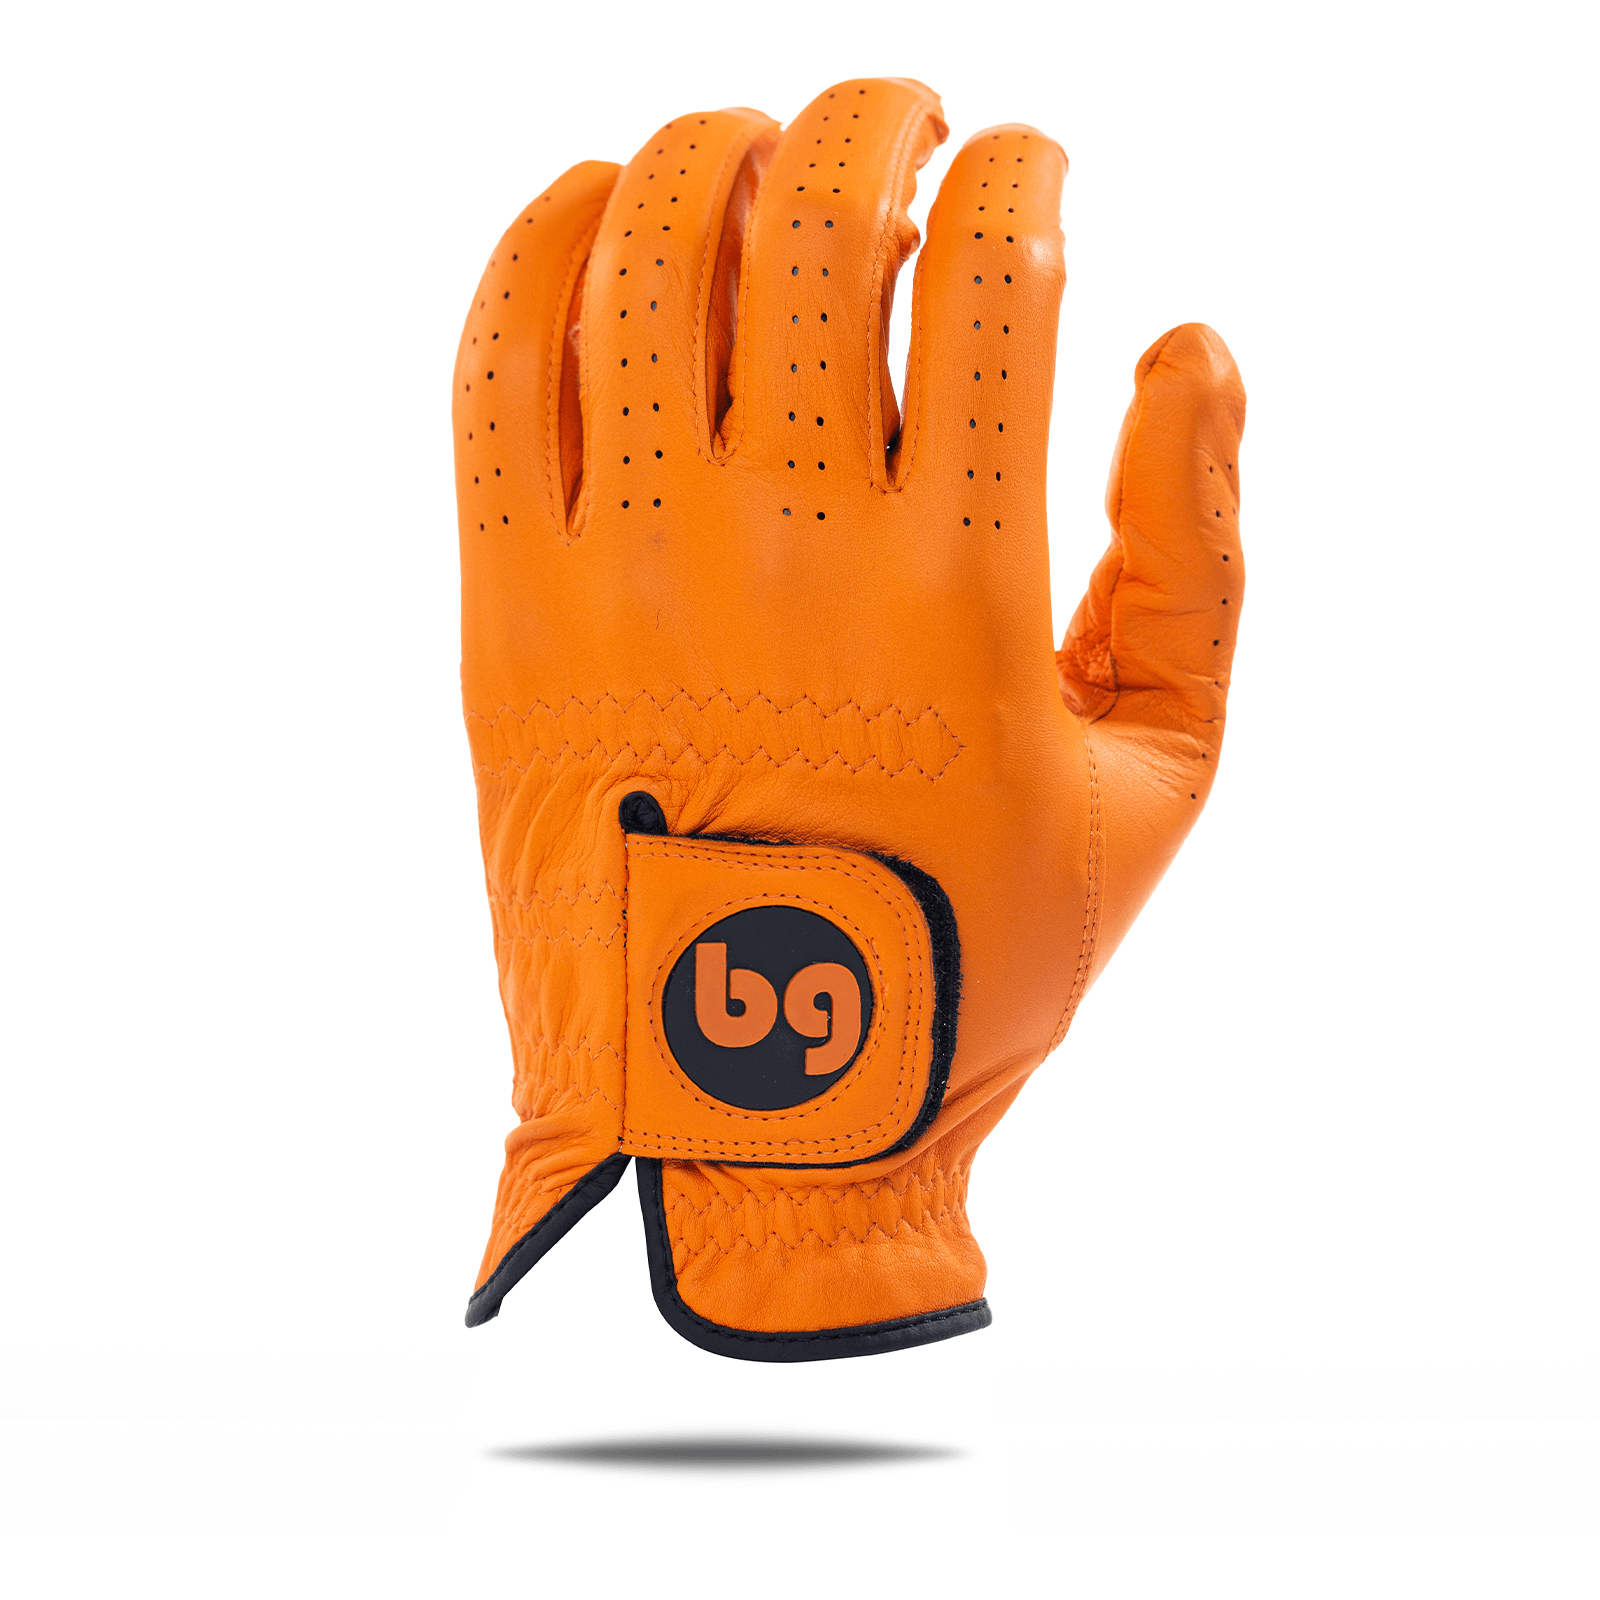 Orange Elite Tour Golf Glove